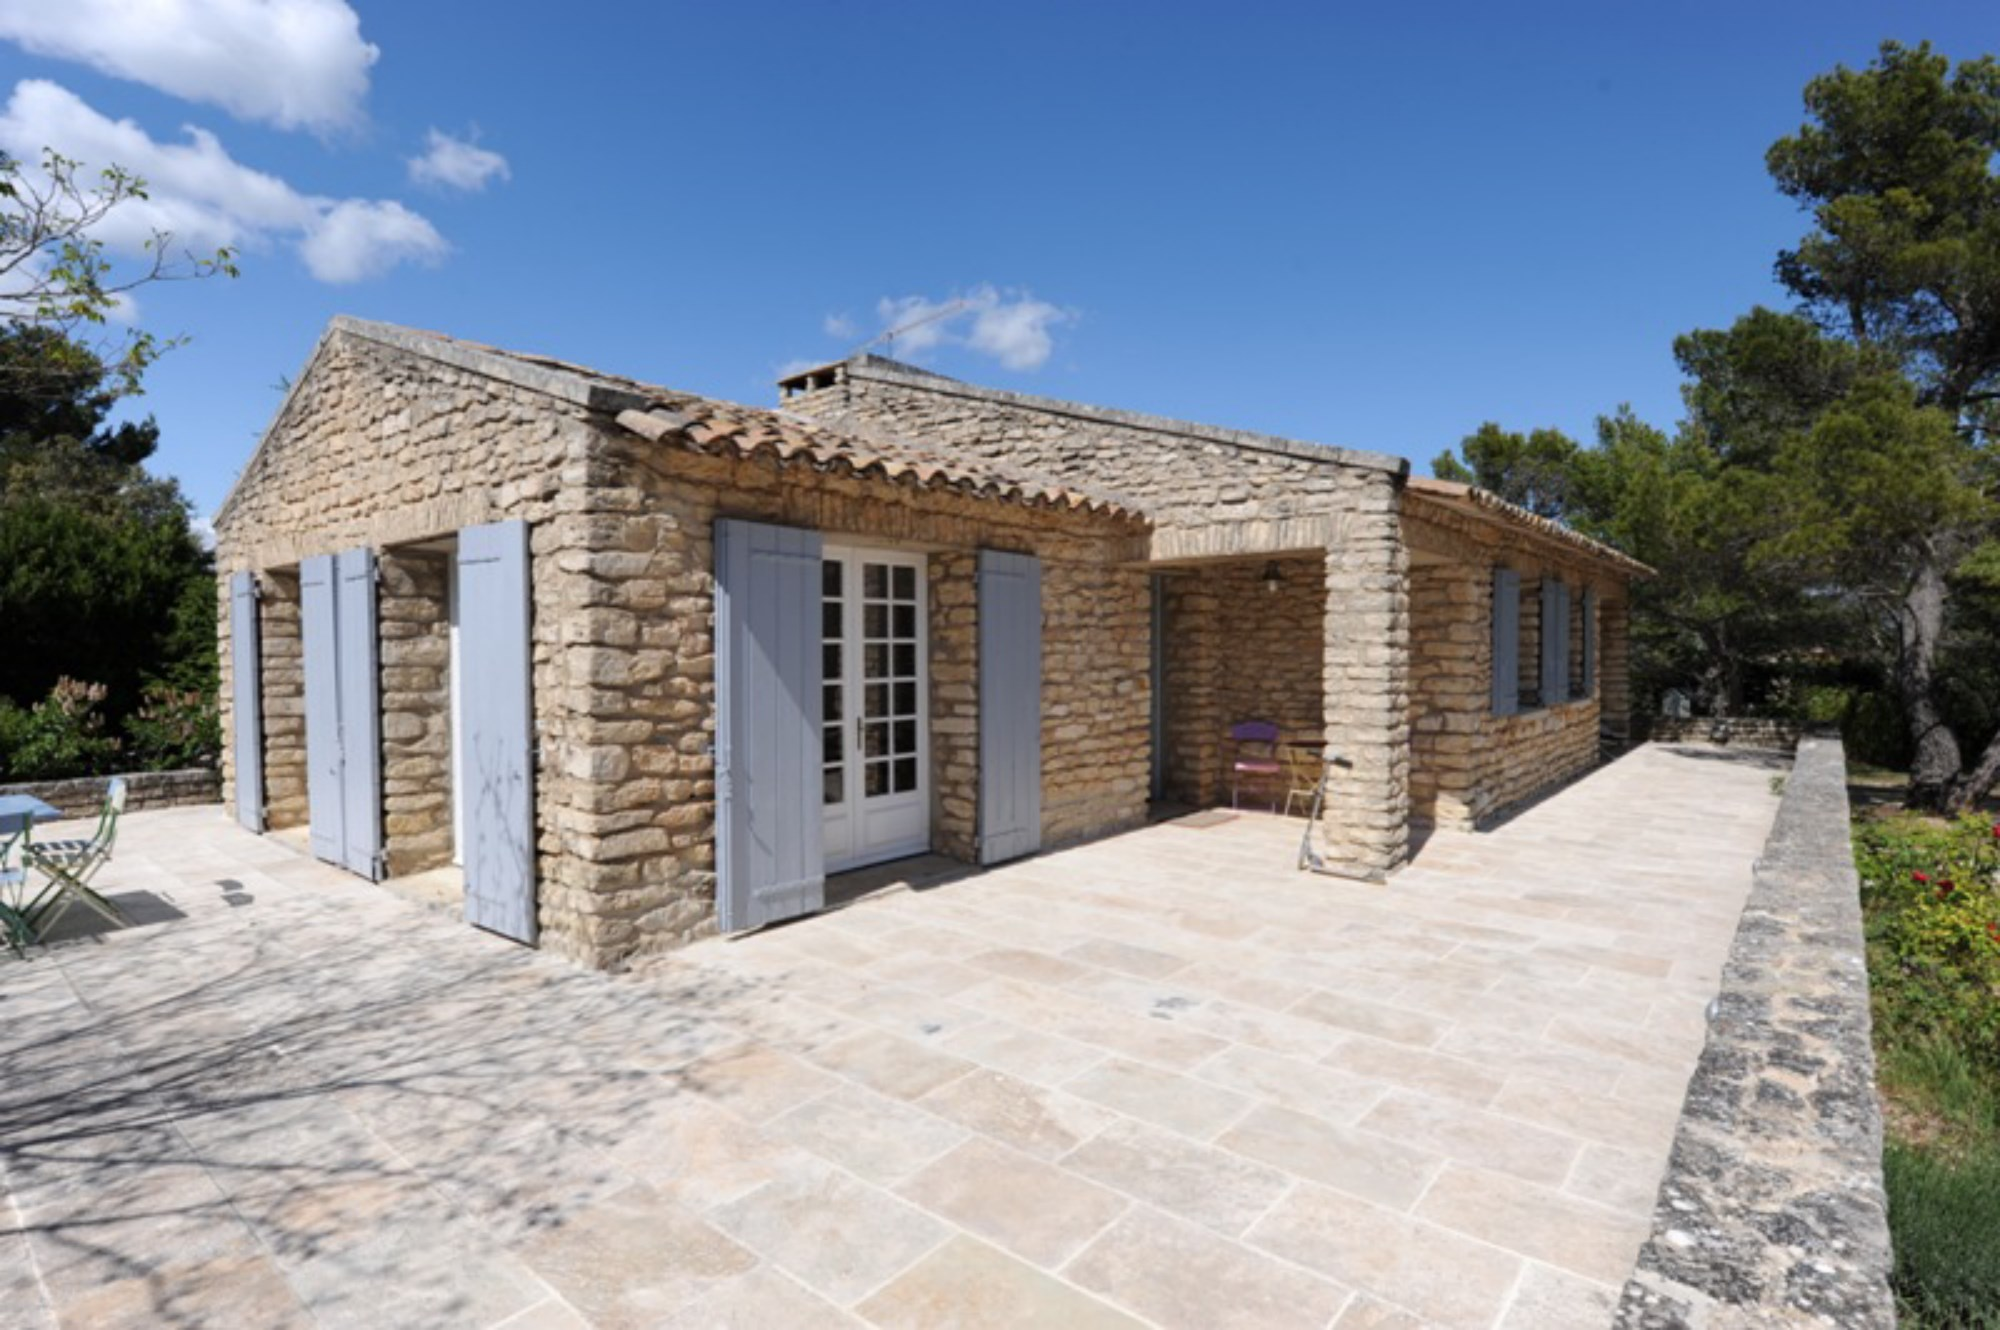 Ventes en luberon vendre belle maison traditionnelle for Image de belle maison